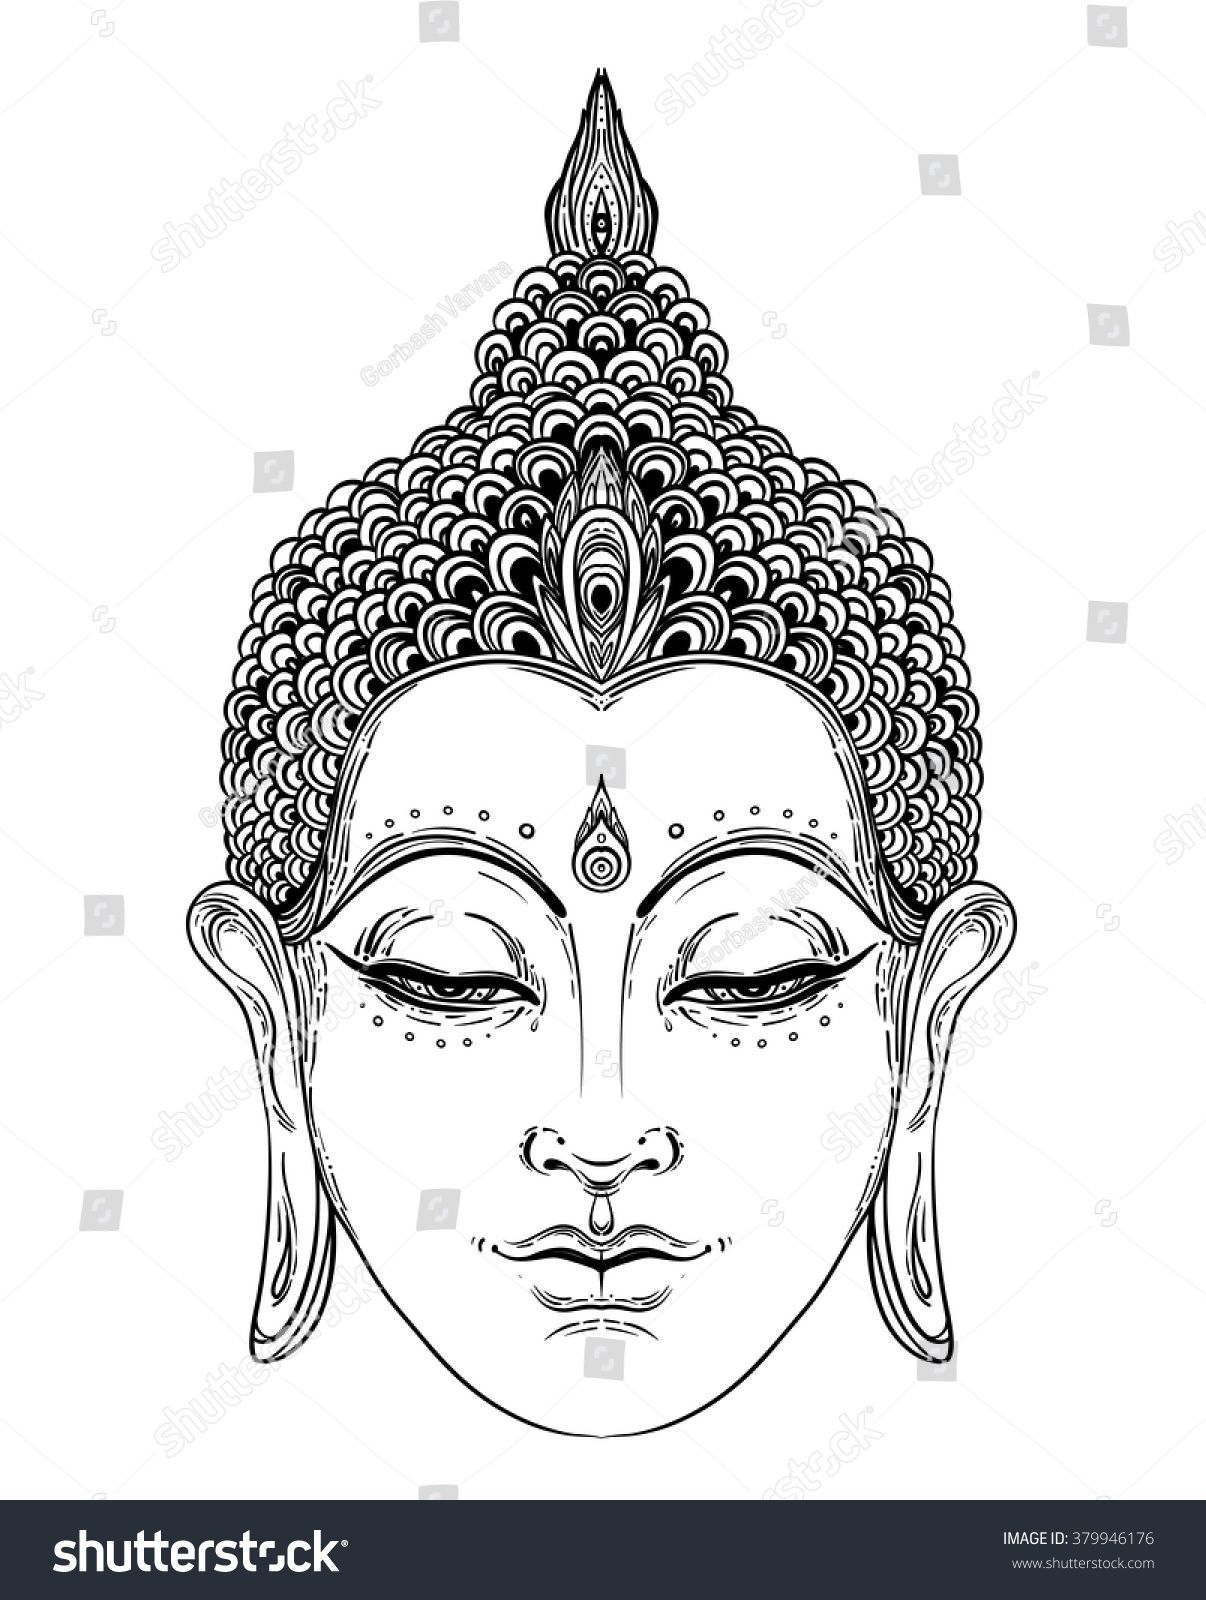 f5010cadc699d Buddha face isolated on white. Esoteric vintage vector illustration. Indian,  Buddhism, spiritual art. Hippie tattoo, spirituality, Thai god, ...